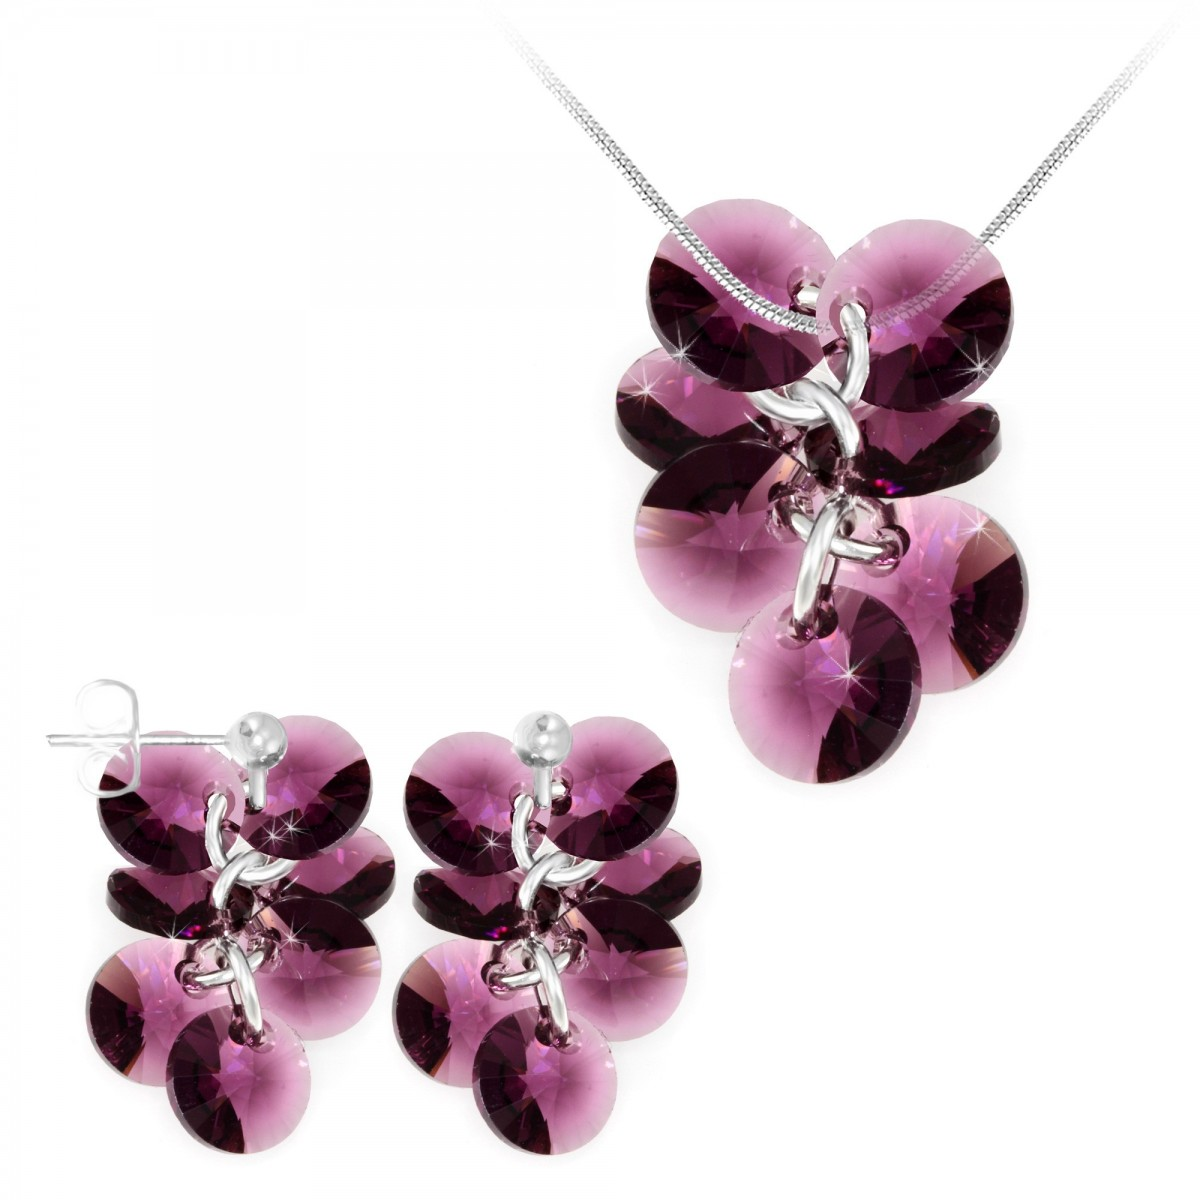 Parure collier et boucles d'oreilles mode So Charm made with crystals from Swarovski amethyst